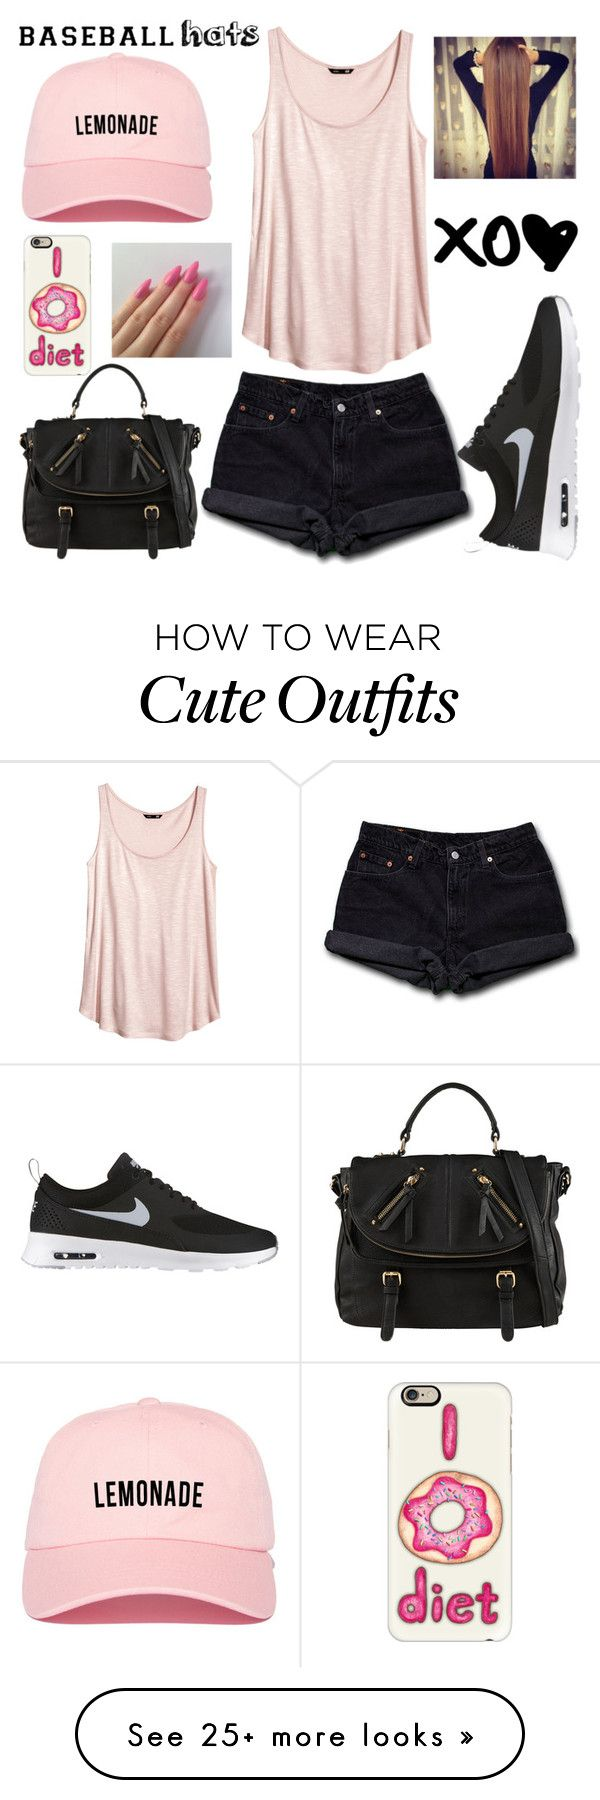 """""""Got to Outfit"""" by jmaebuena on Polyvore featuring H&M, Levi's, NIKE, Casetify, ALDO, baseballcap and baseballhats"""